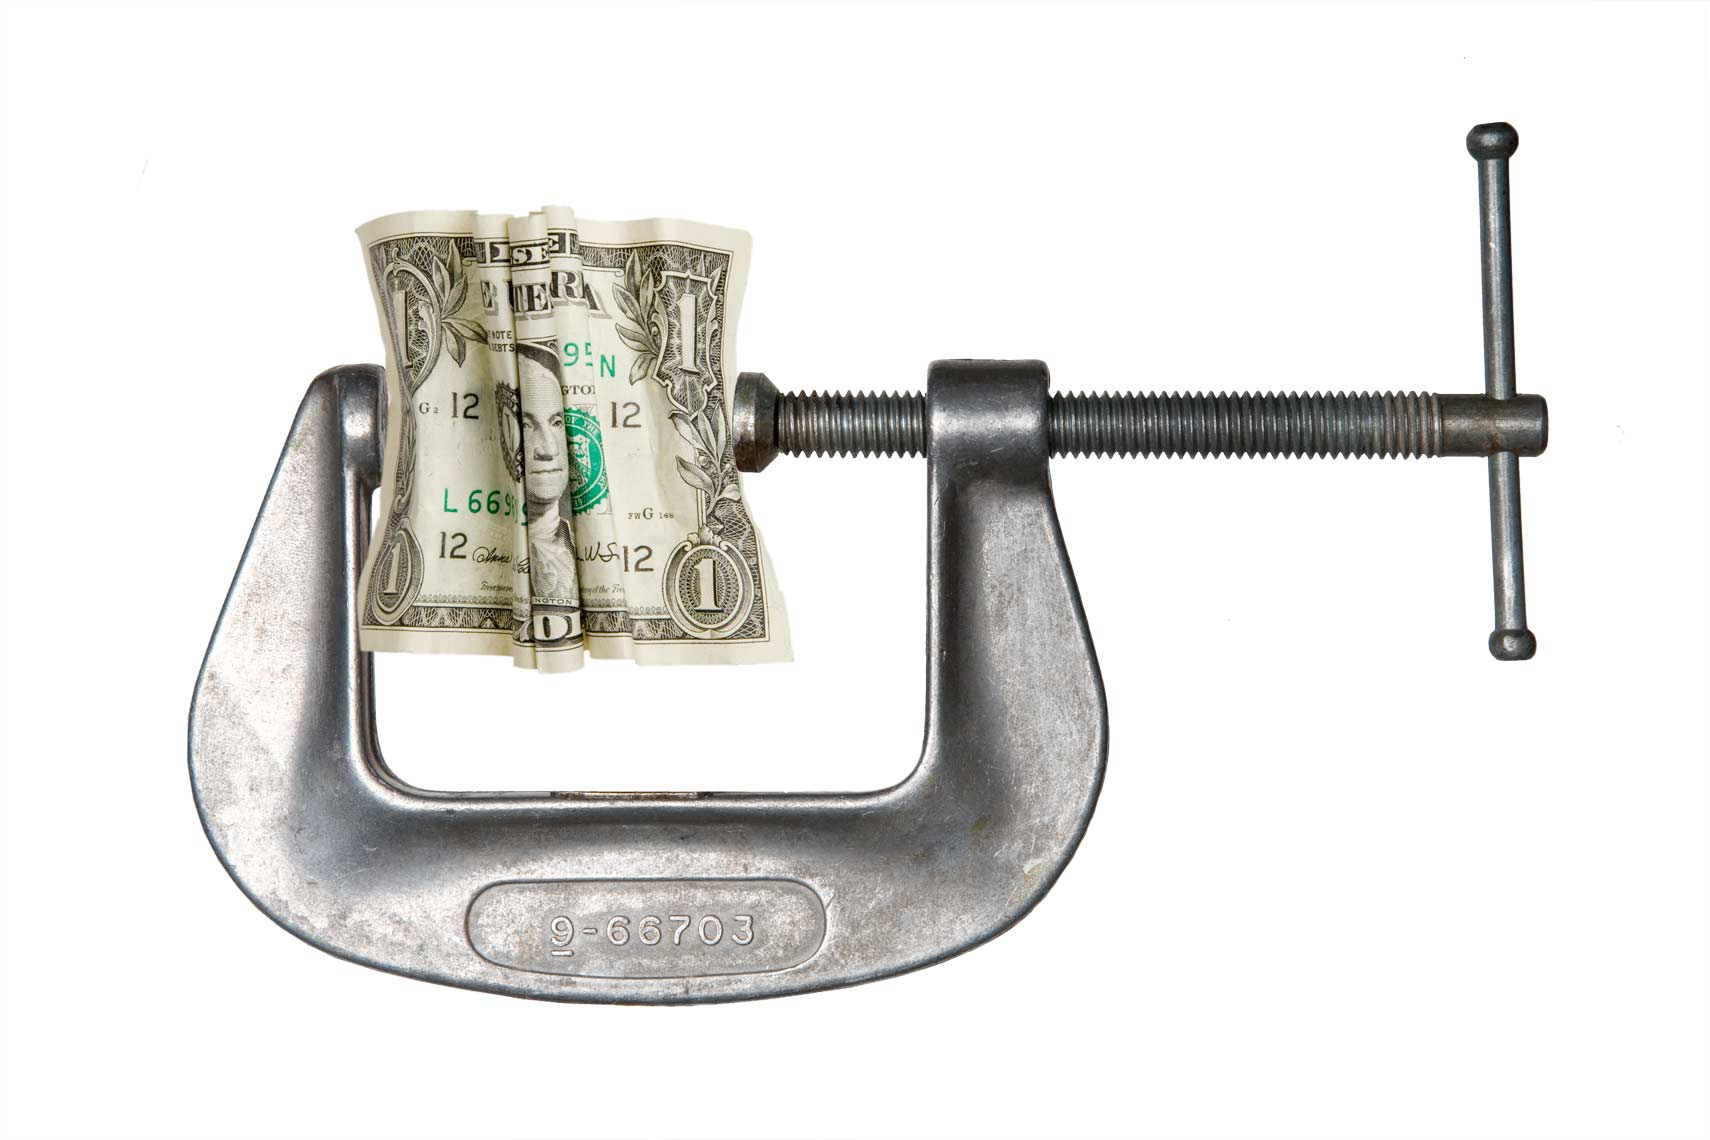 Vise squeezing a dollar